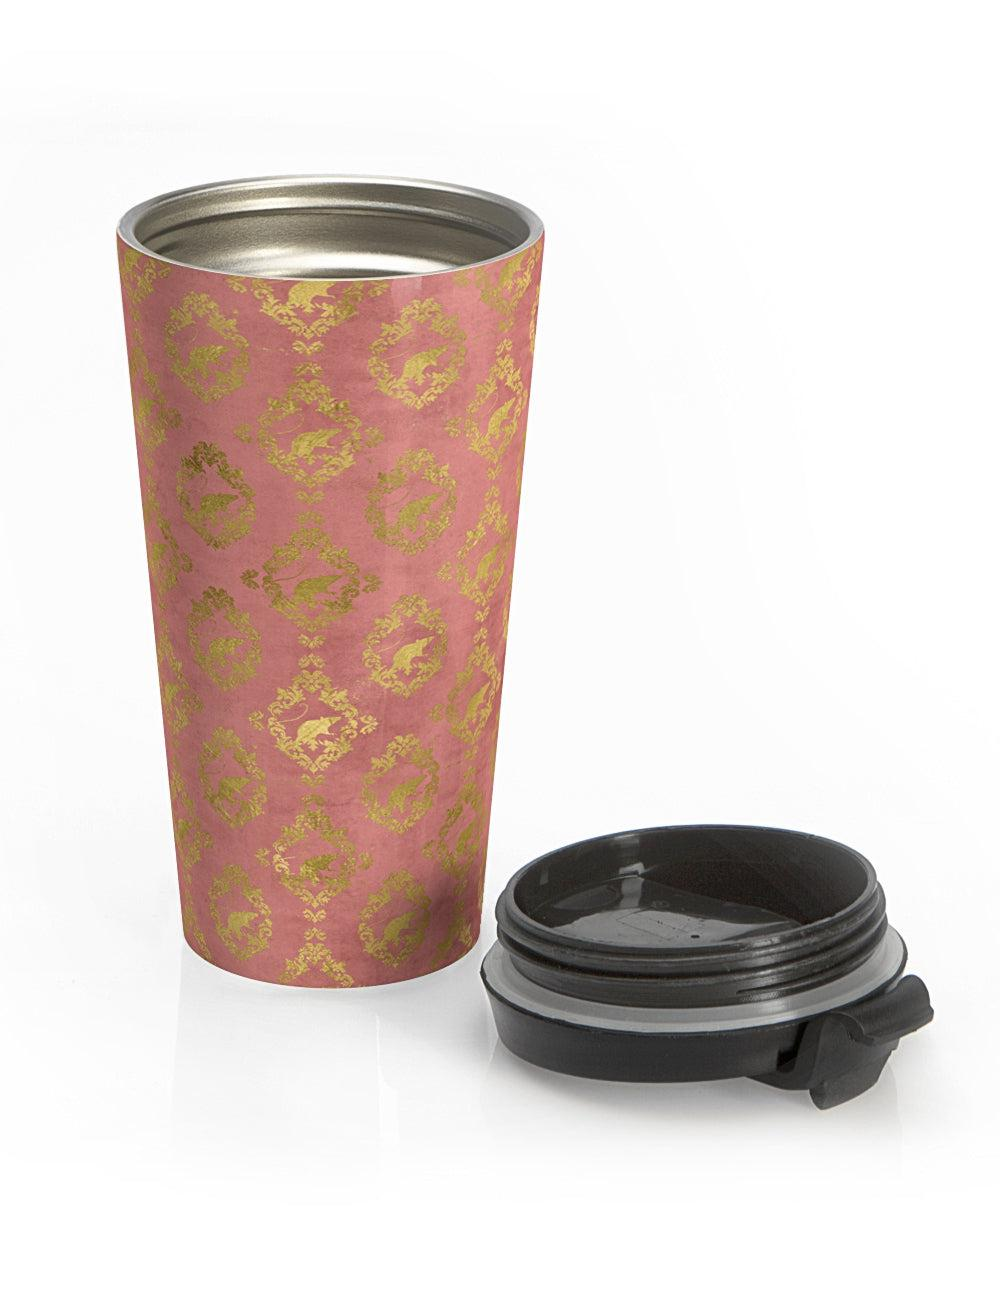 Gilded Rats Travel Tea Tumbler in 'Sudden Blush' - Asylum Emporium